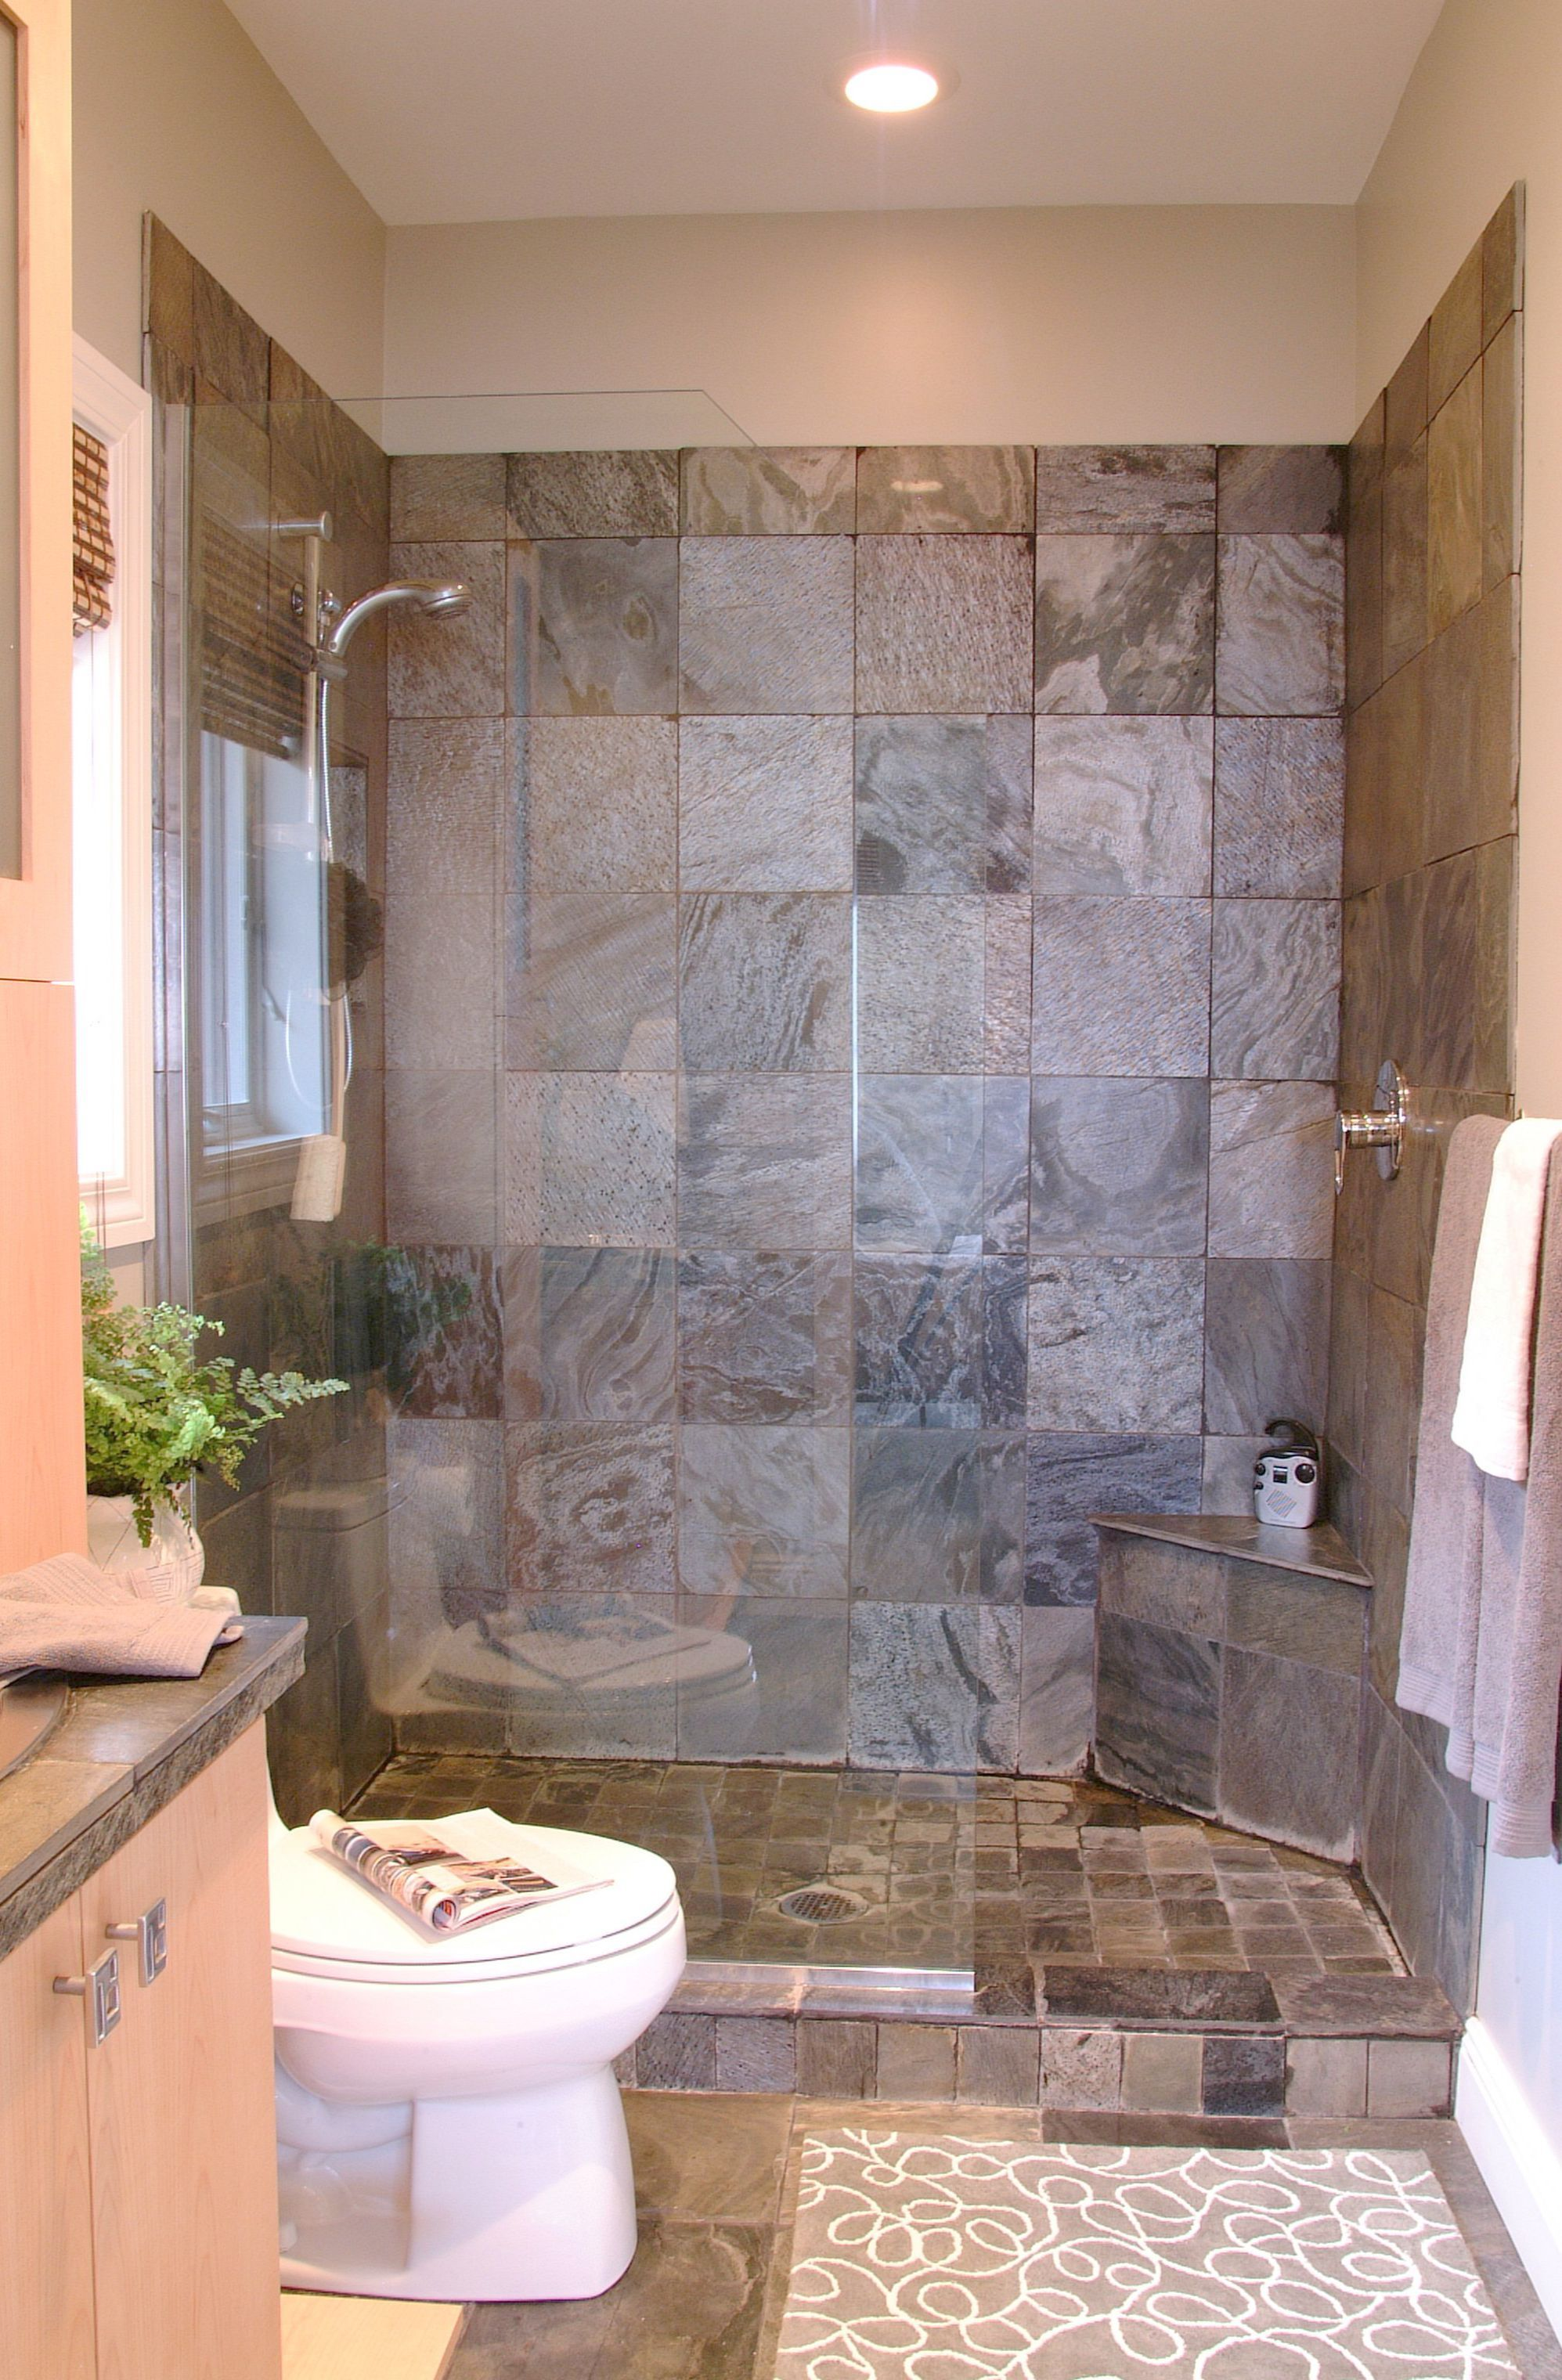 Modern Bathroom Jacuzzi Best Of Gas Can Spout Lowes Awesome Hot Tubs Modern Lowes Hot Tub Lovely